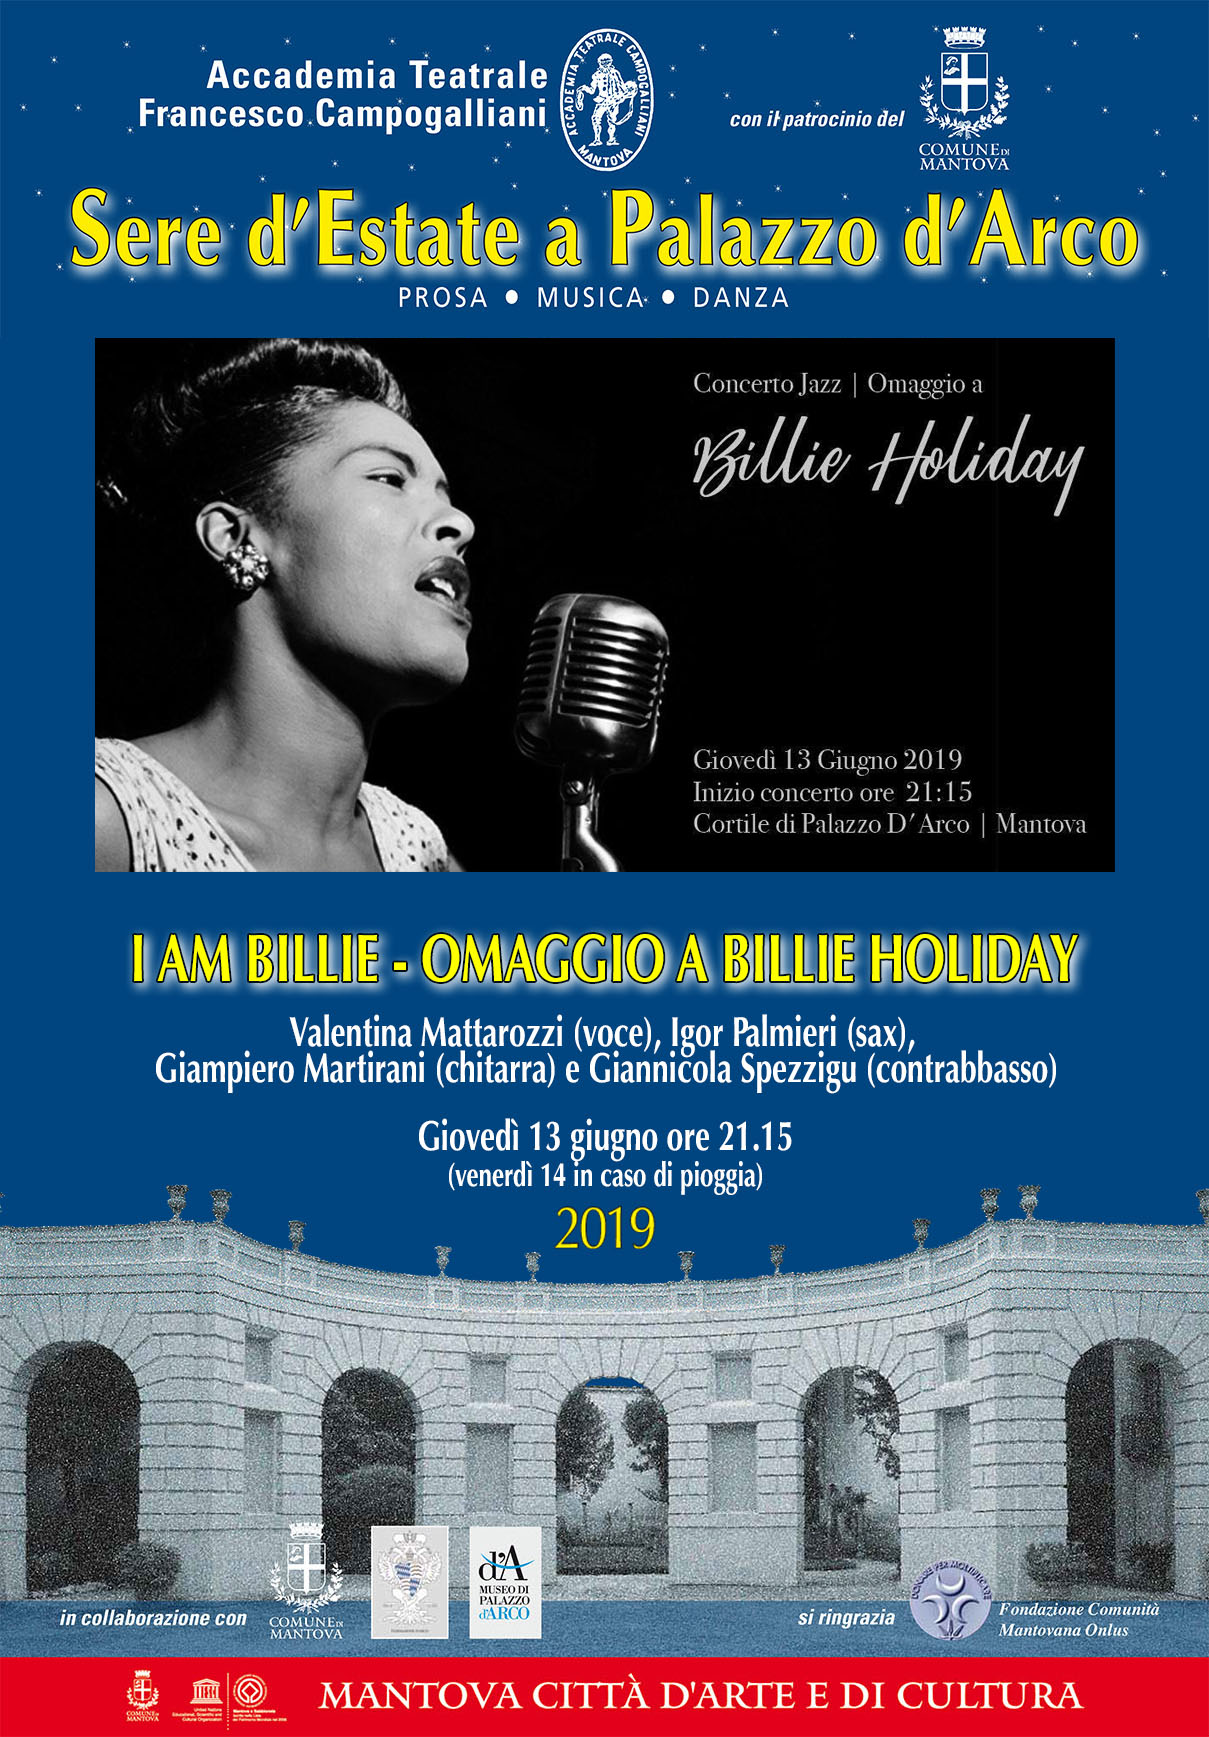 I AM BILLIE: omaggio a Billie Holiday